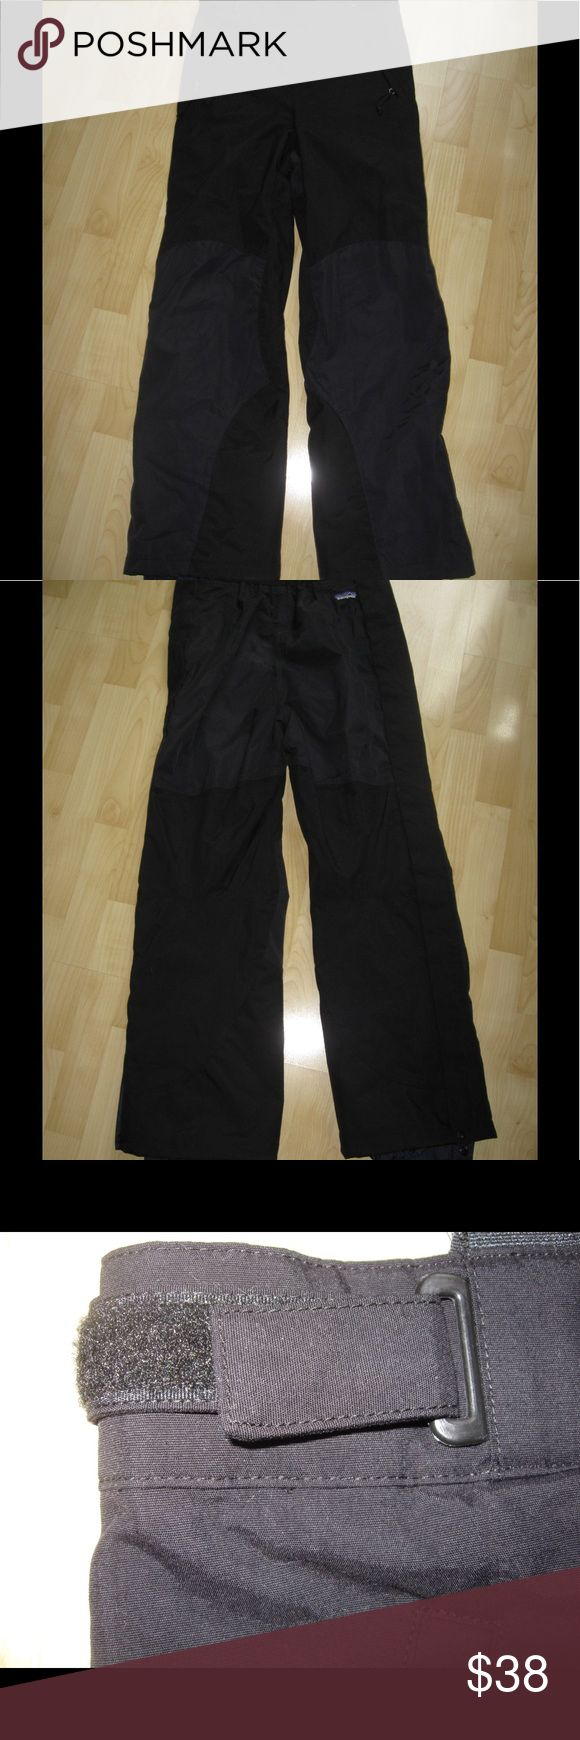 Patagonia Ski Snow Pants Black ski pants w/ Velcro waist. Has cuffed bottoms w/ Velcro, zipper sides. In very good condition. Ask any questions! 📦Same/ Next Day Shipping 🚫Paypal/ Trades ✅Bundles 🚫Smoke Free Patagonia Other